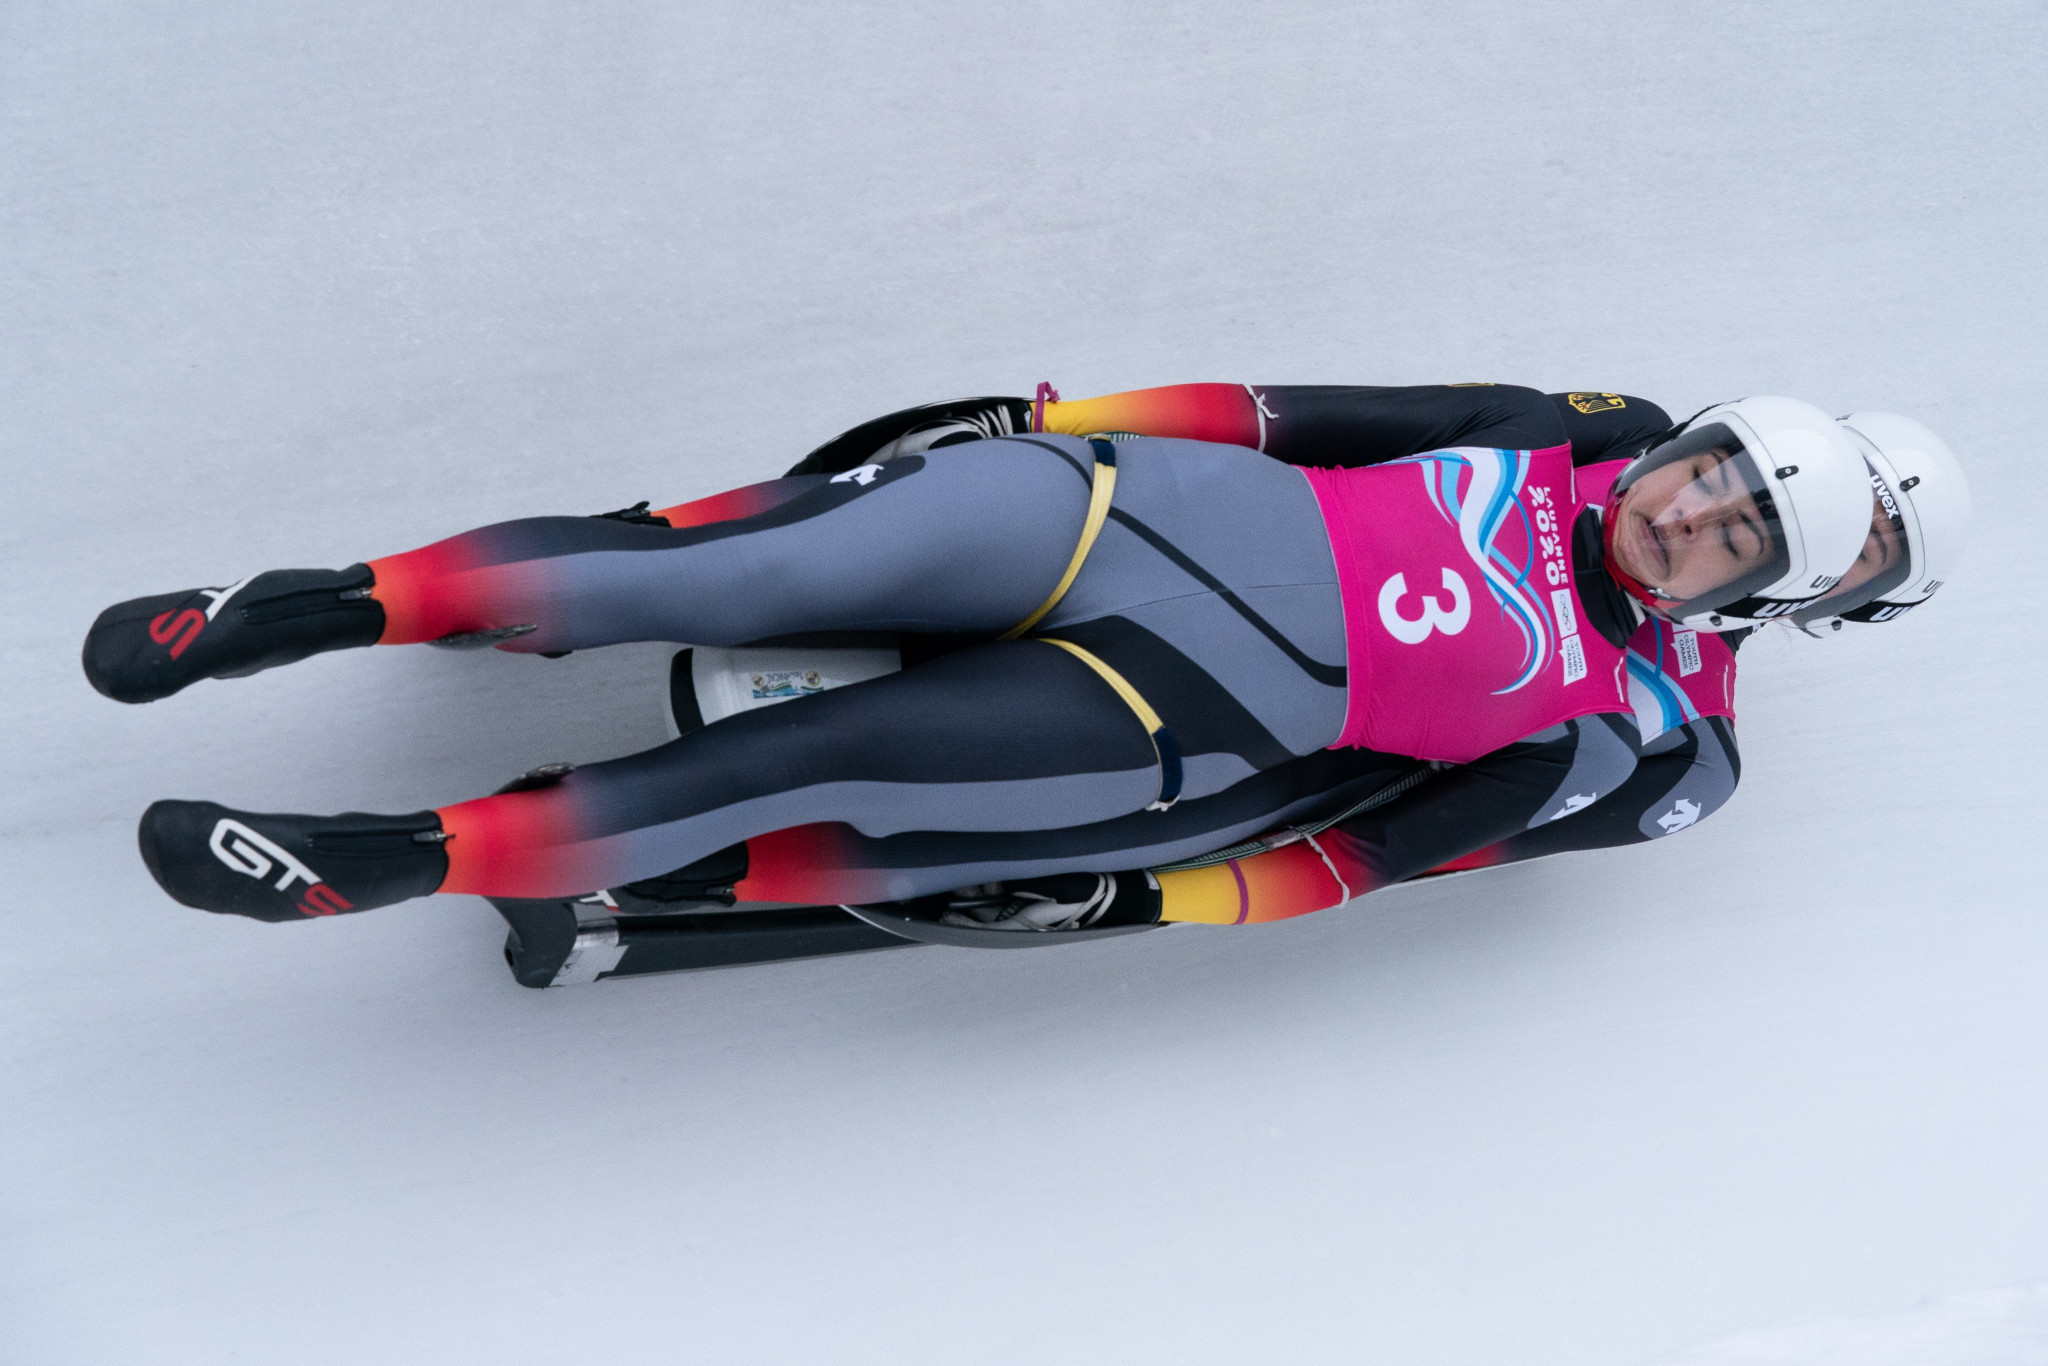 Women's doubles luge featured at the Lausanne 2020 Winter Youth Olympics ©Lausanne 2020